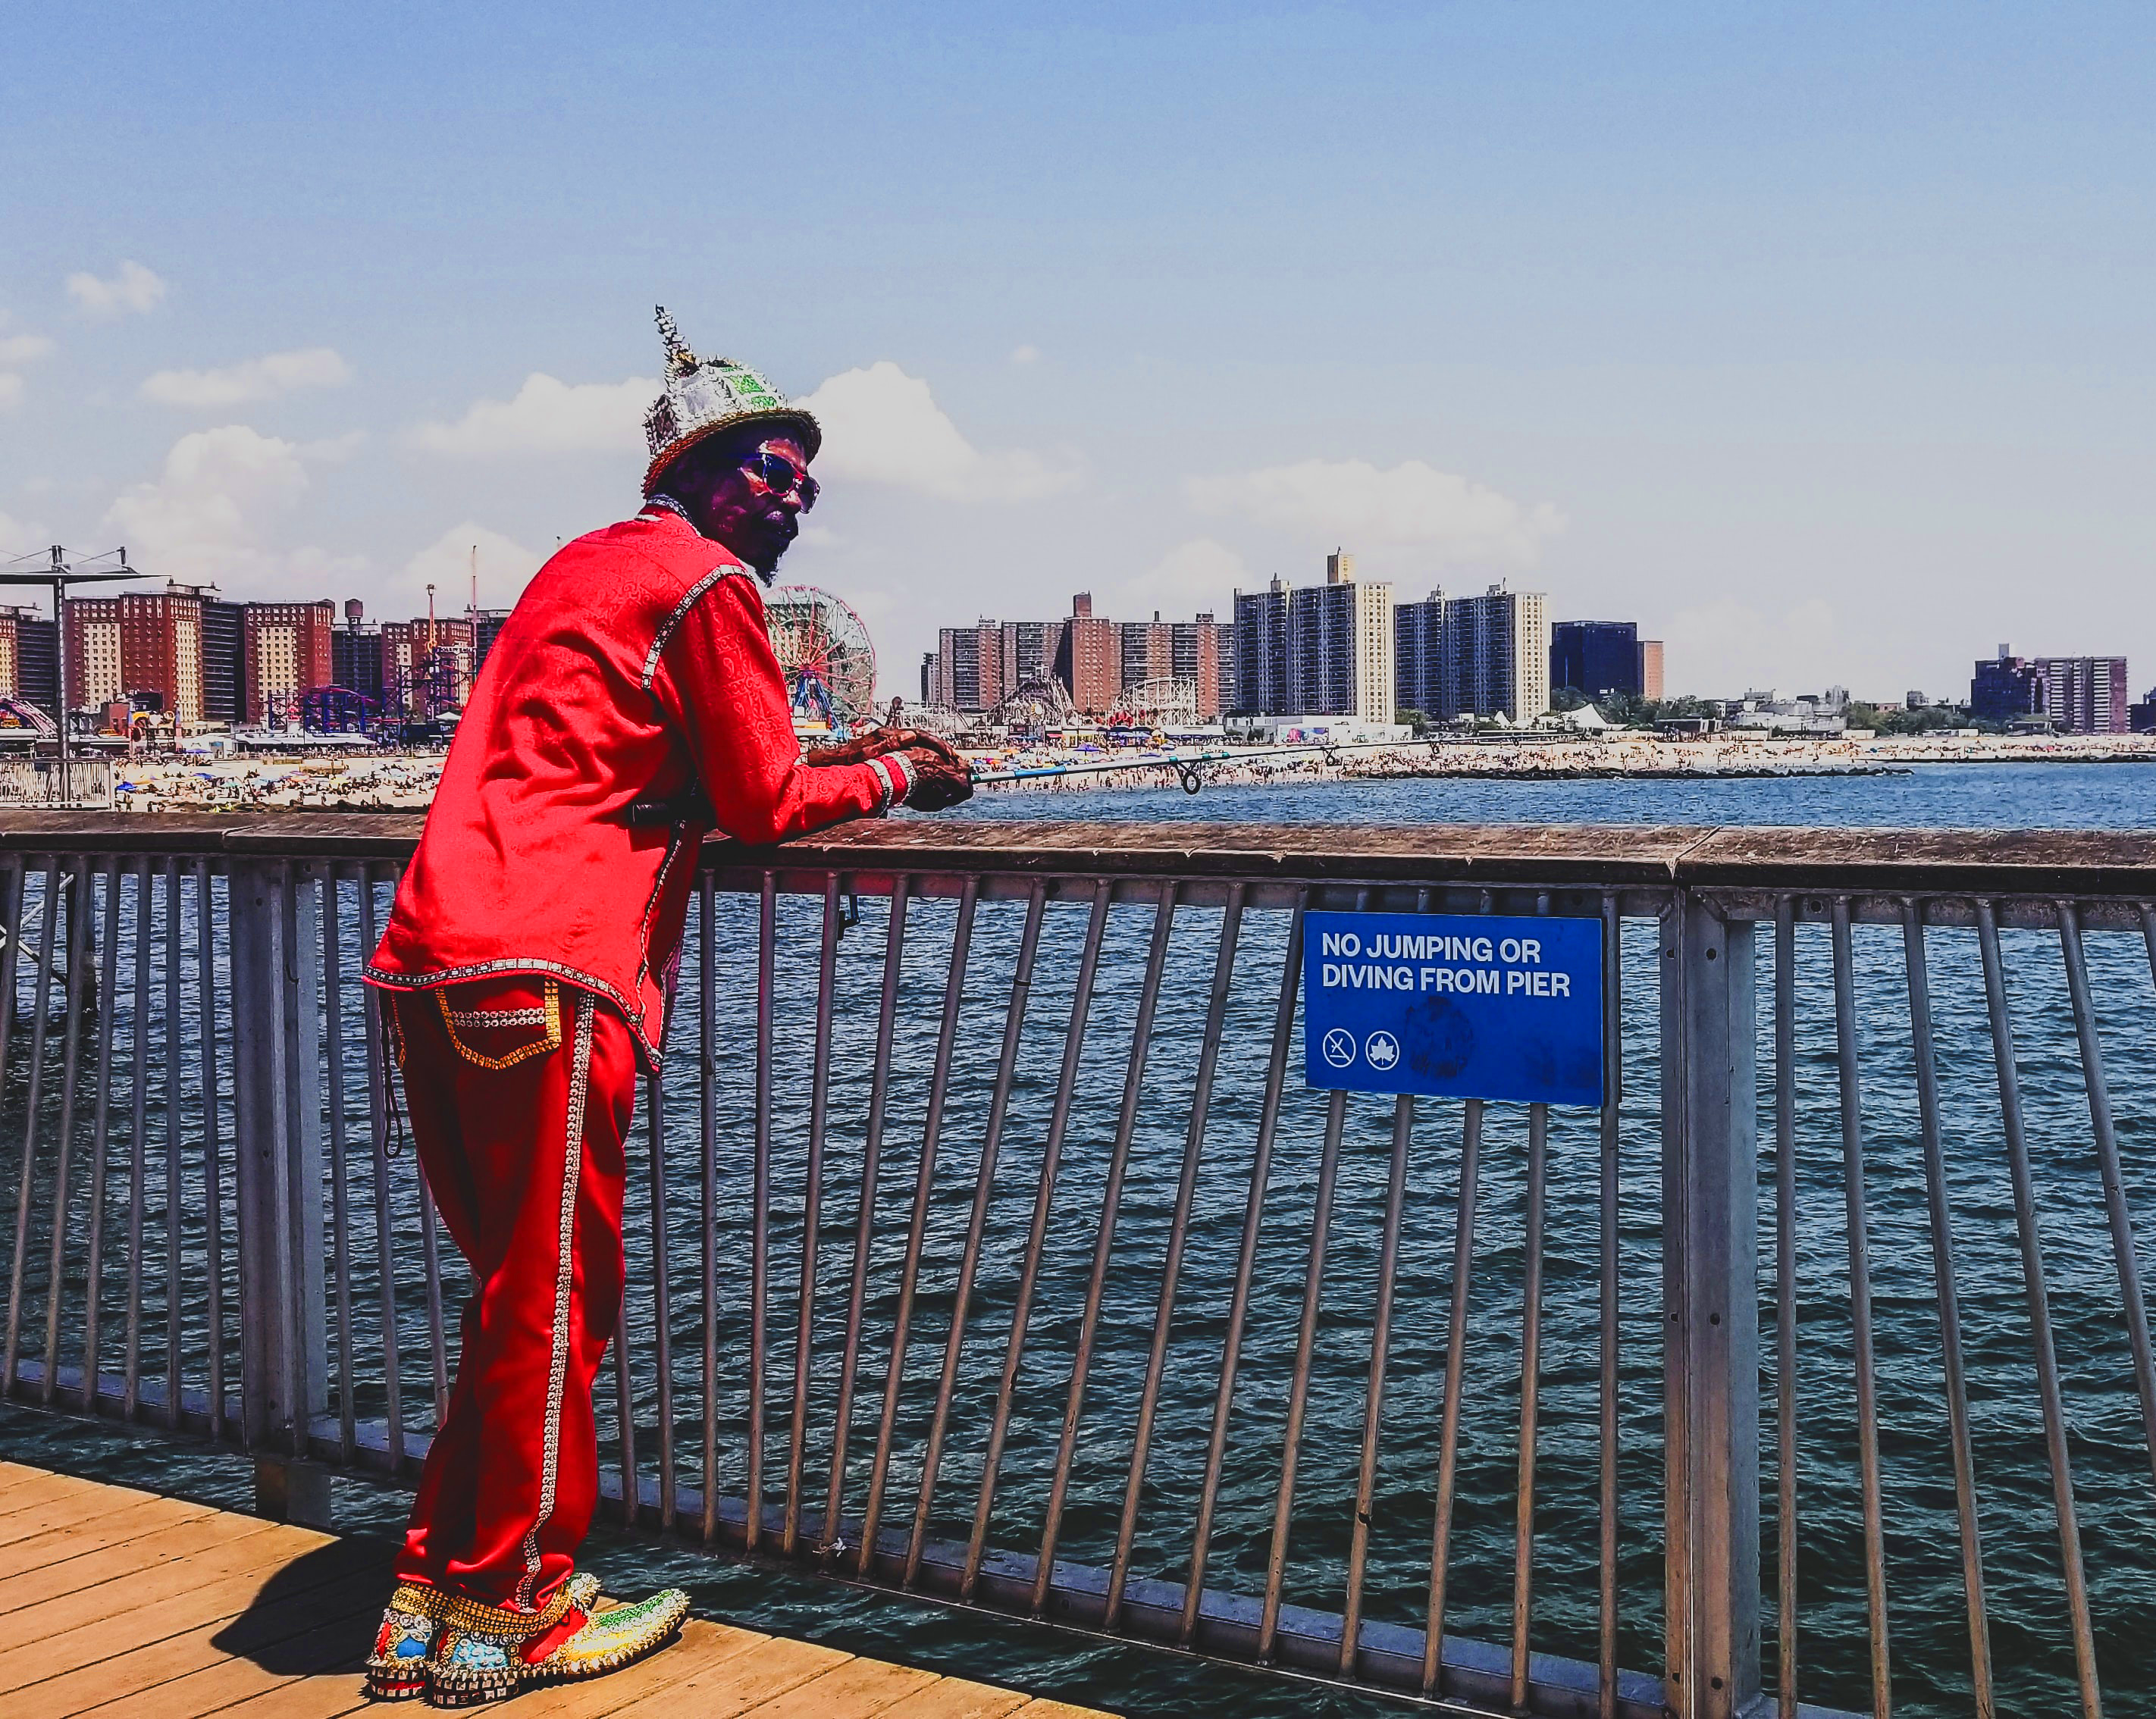 Black man in red jumpsuit looks out over pier at hotels and amusement park